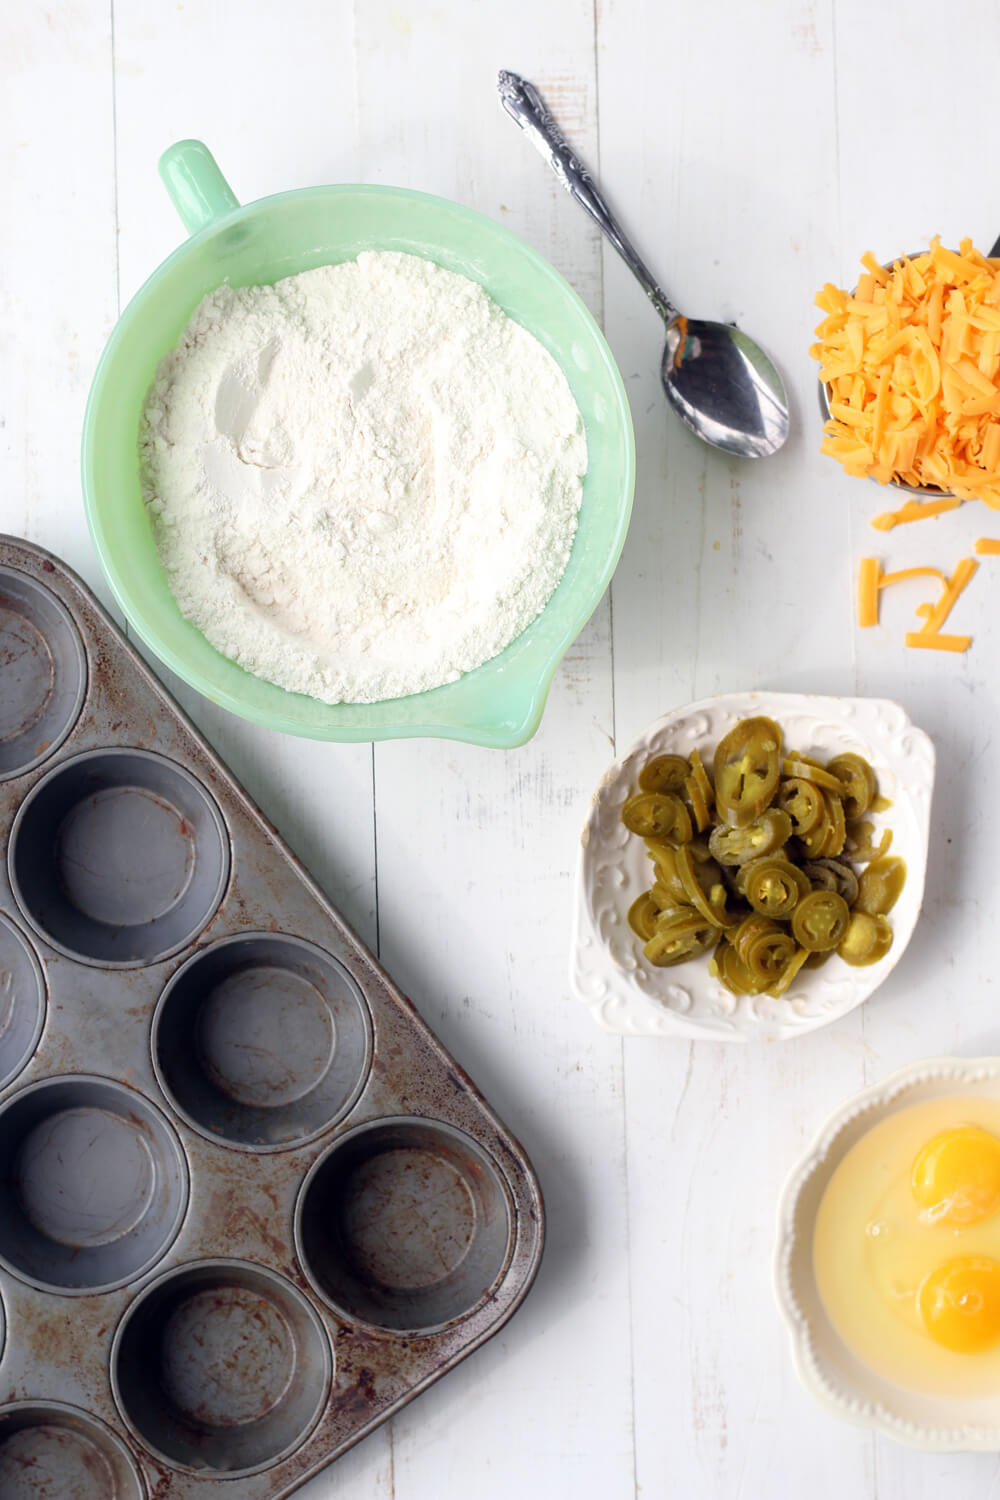 ingredients on a white board including cornmeal, flour, shredded cheese, jalapeno peppers, and eggs